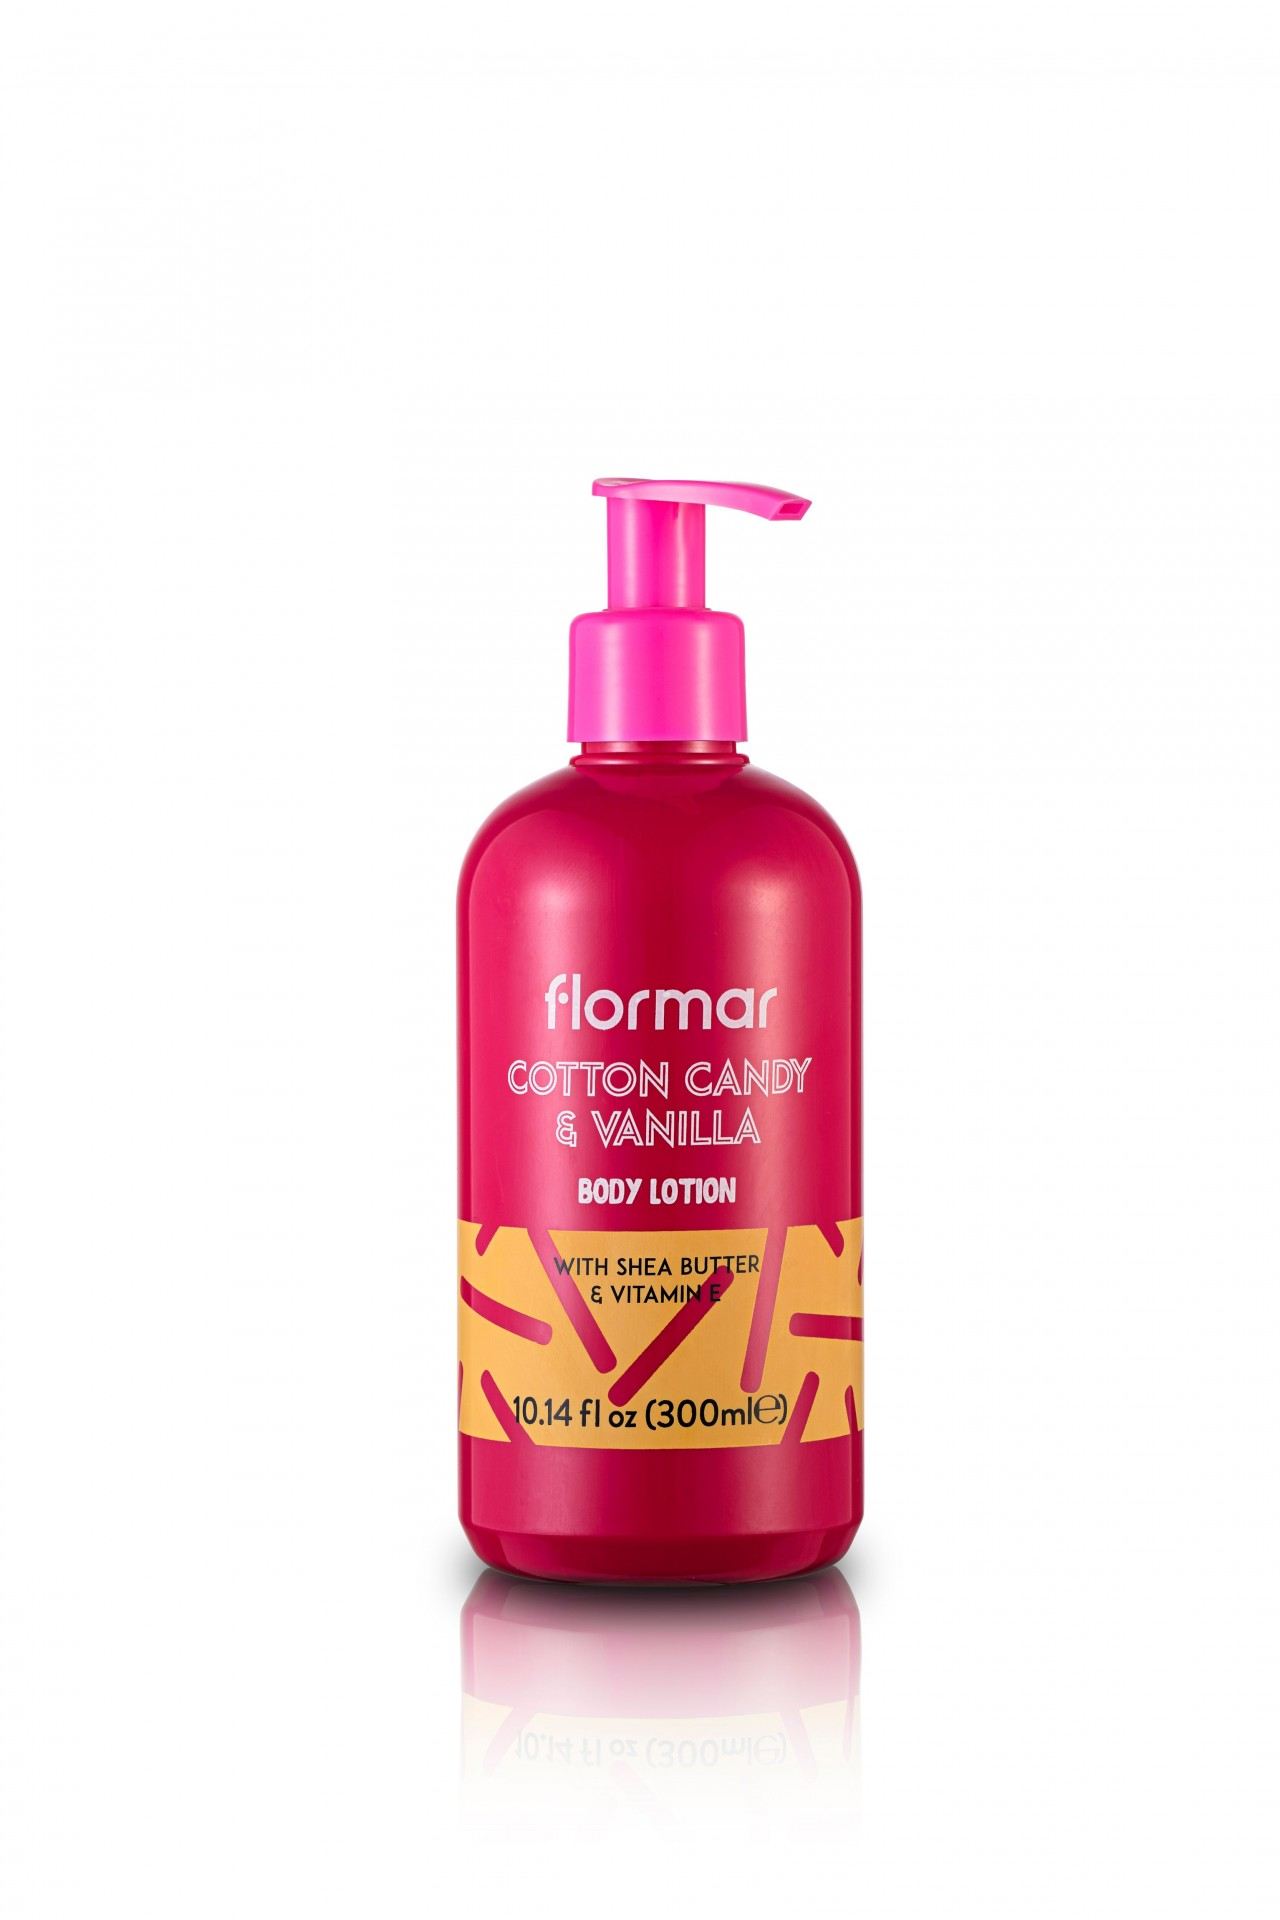 FLORMAR - BODY LOTION - COTTON CANDY & VANILLA